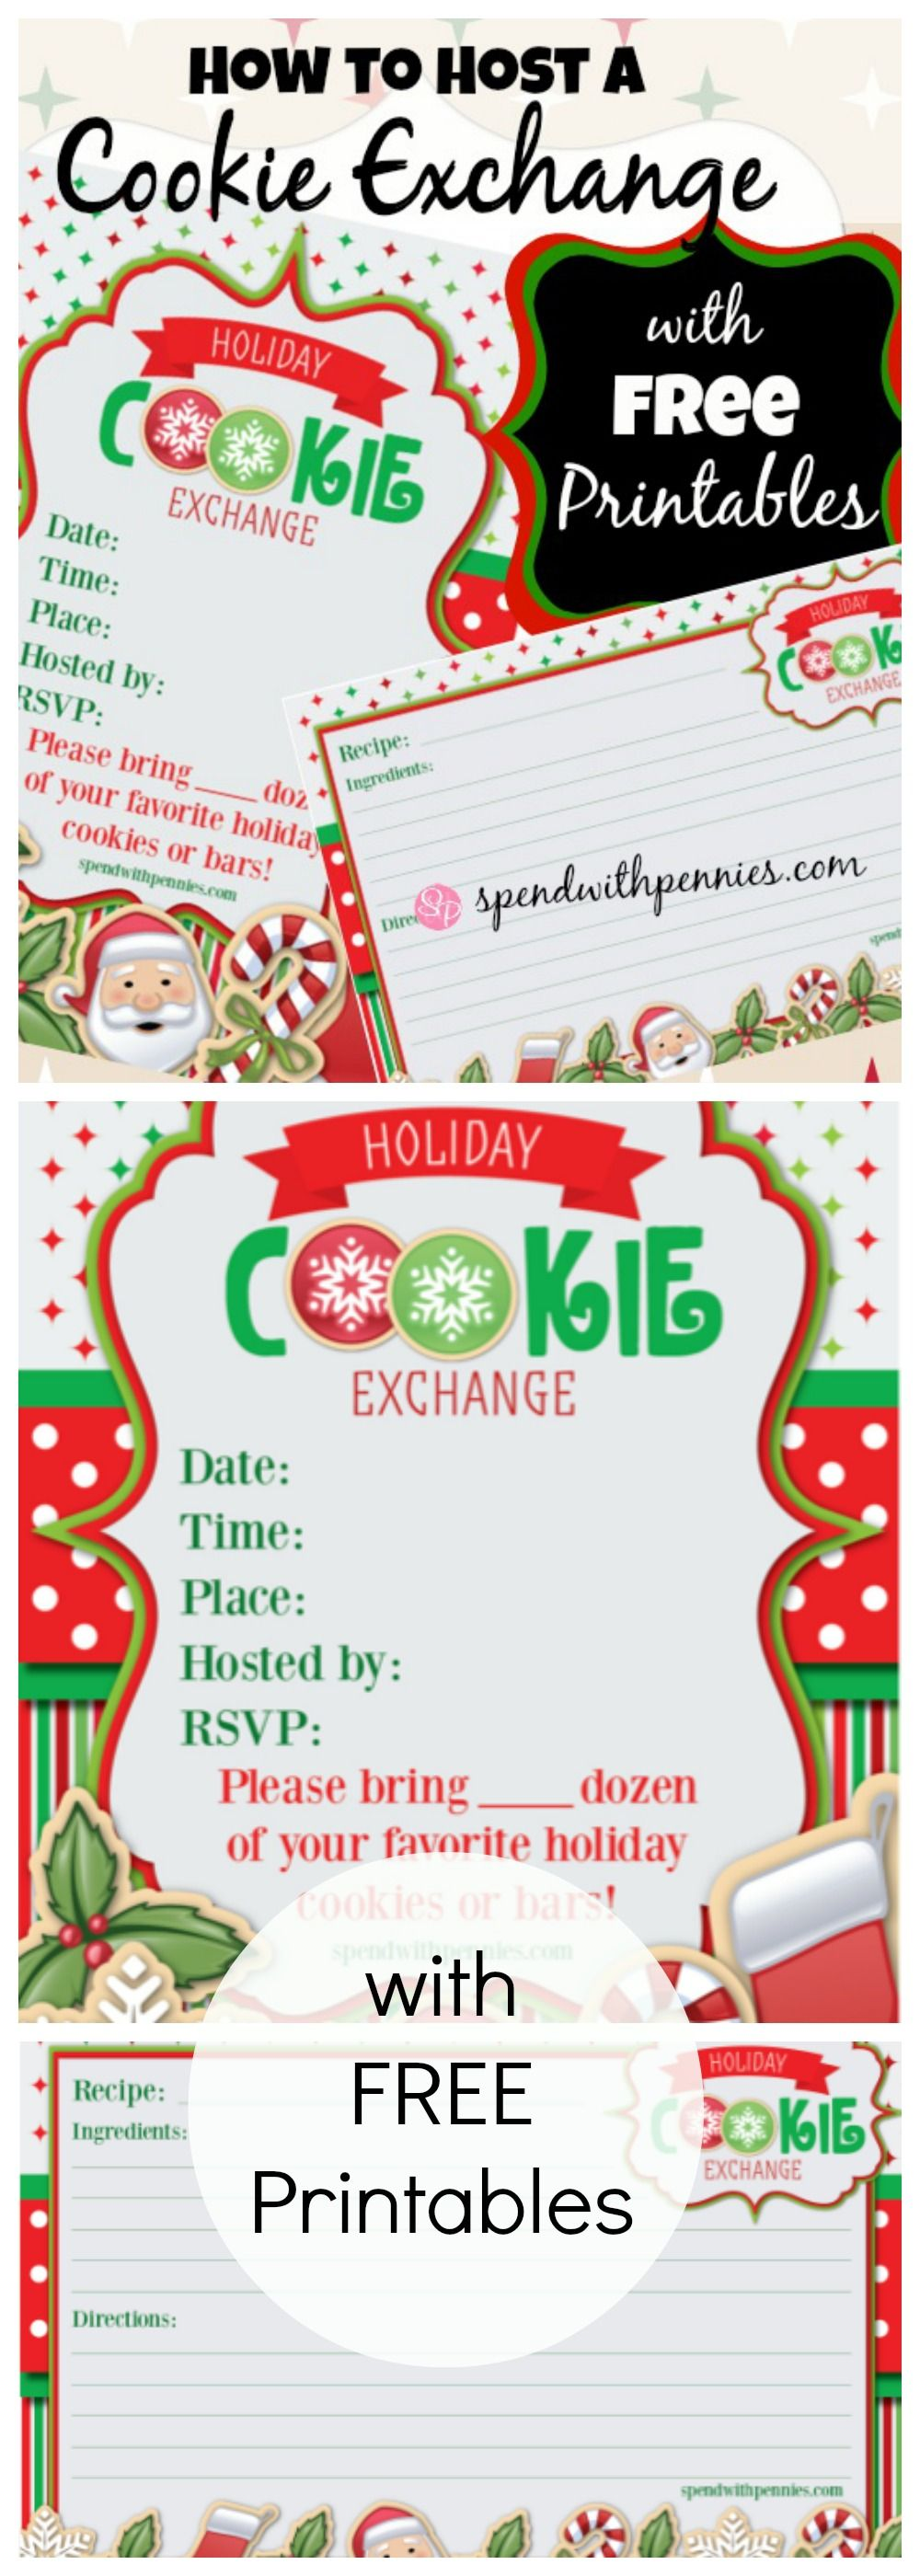 how to host a cookie exchange printable invitations and tips and printables if i had a nice entertaining friendly house i would love to do this